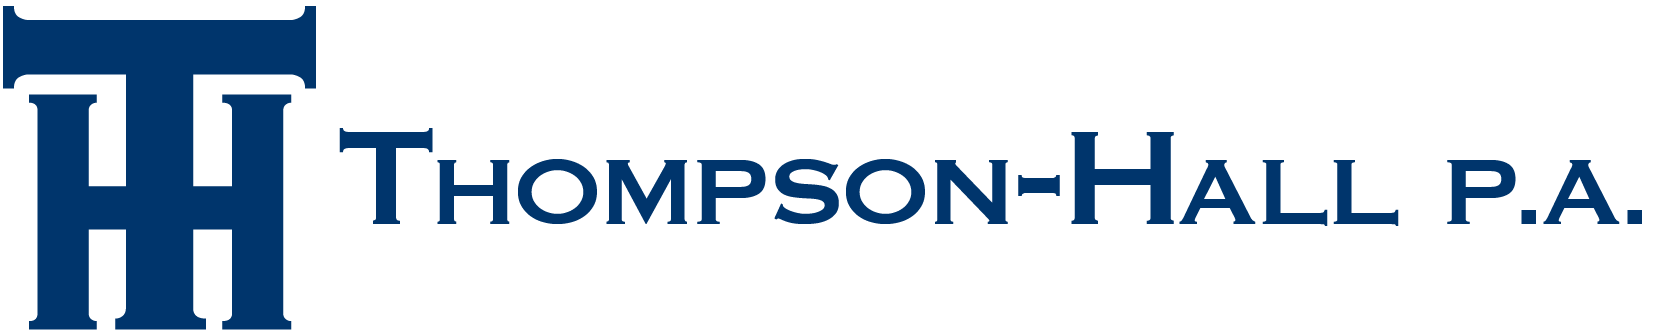 Thompson-Hall, P.A. Law Firm